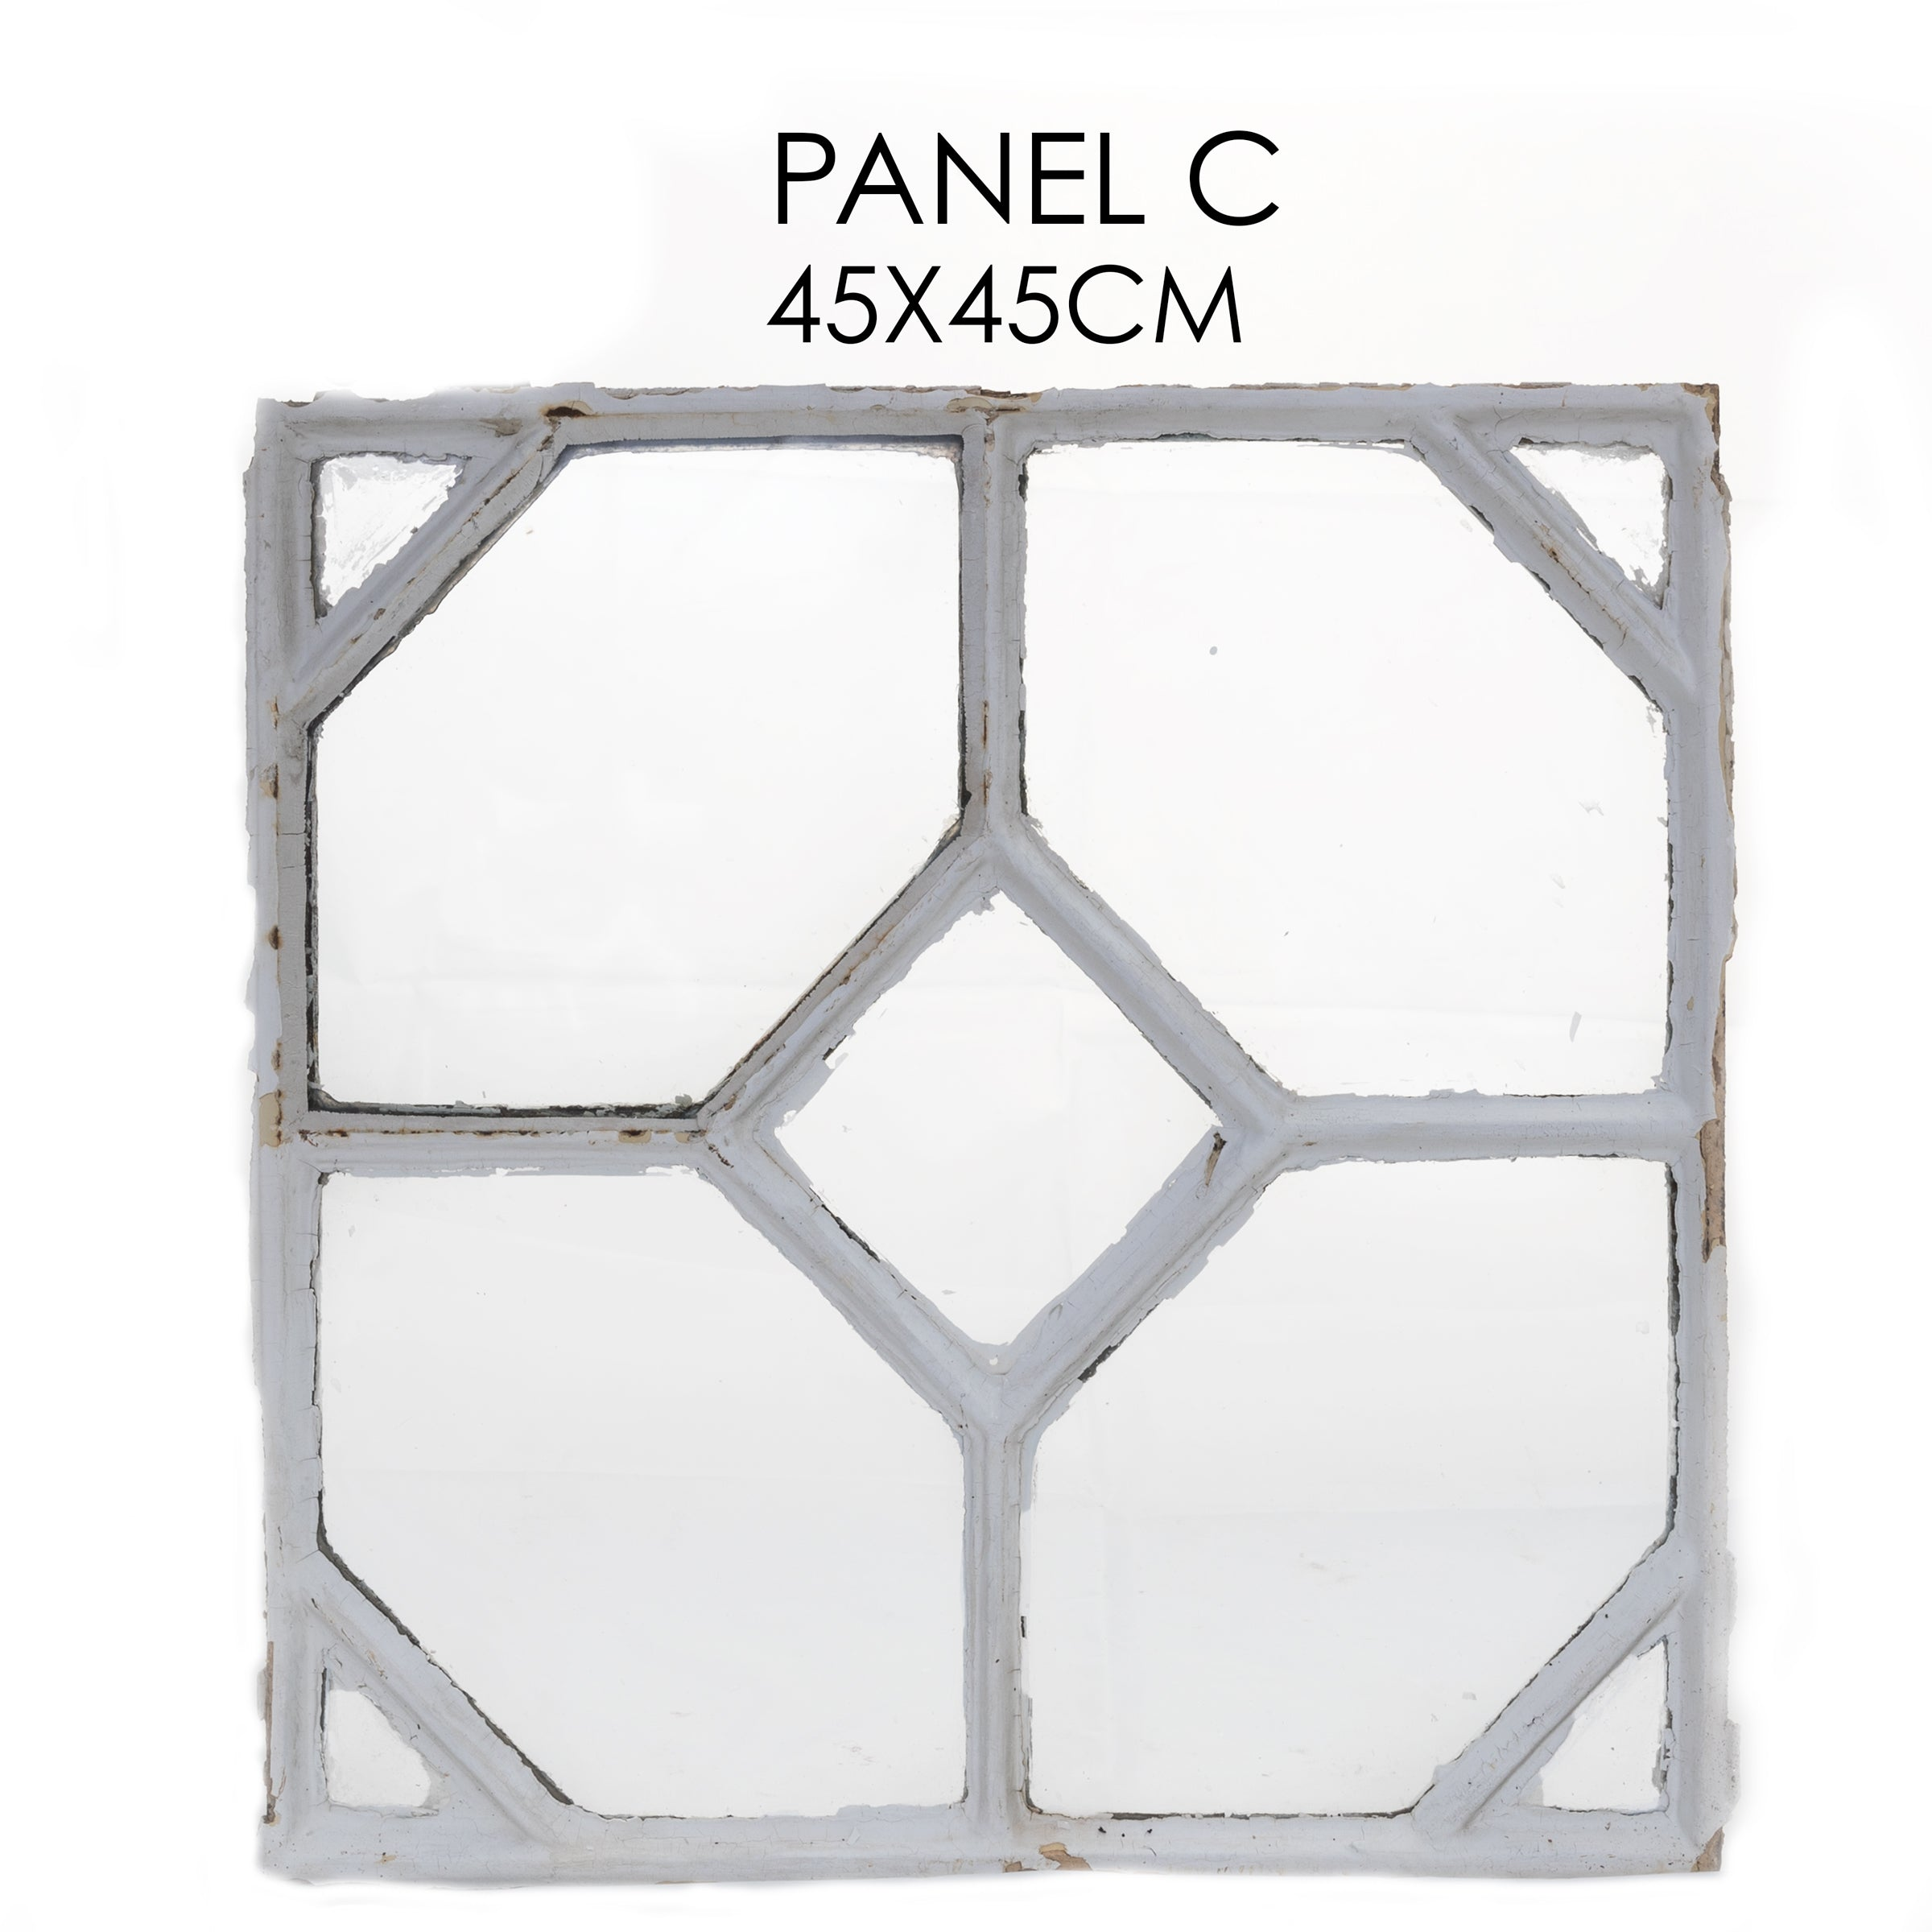 Reclaimed Late 19th Century Crittall Style Honeycomb Window Panels - C